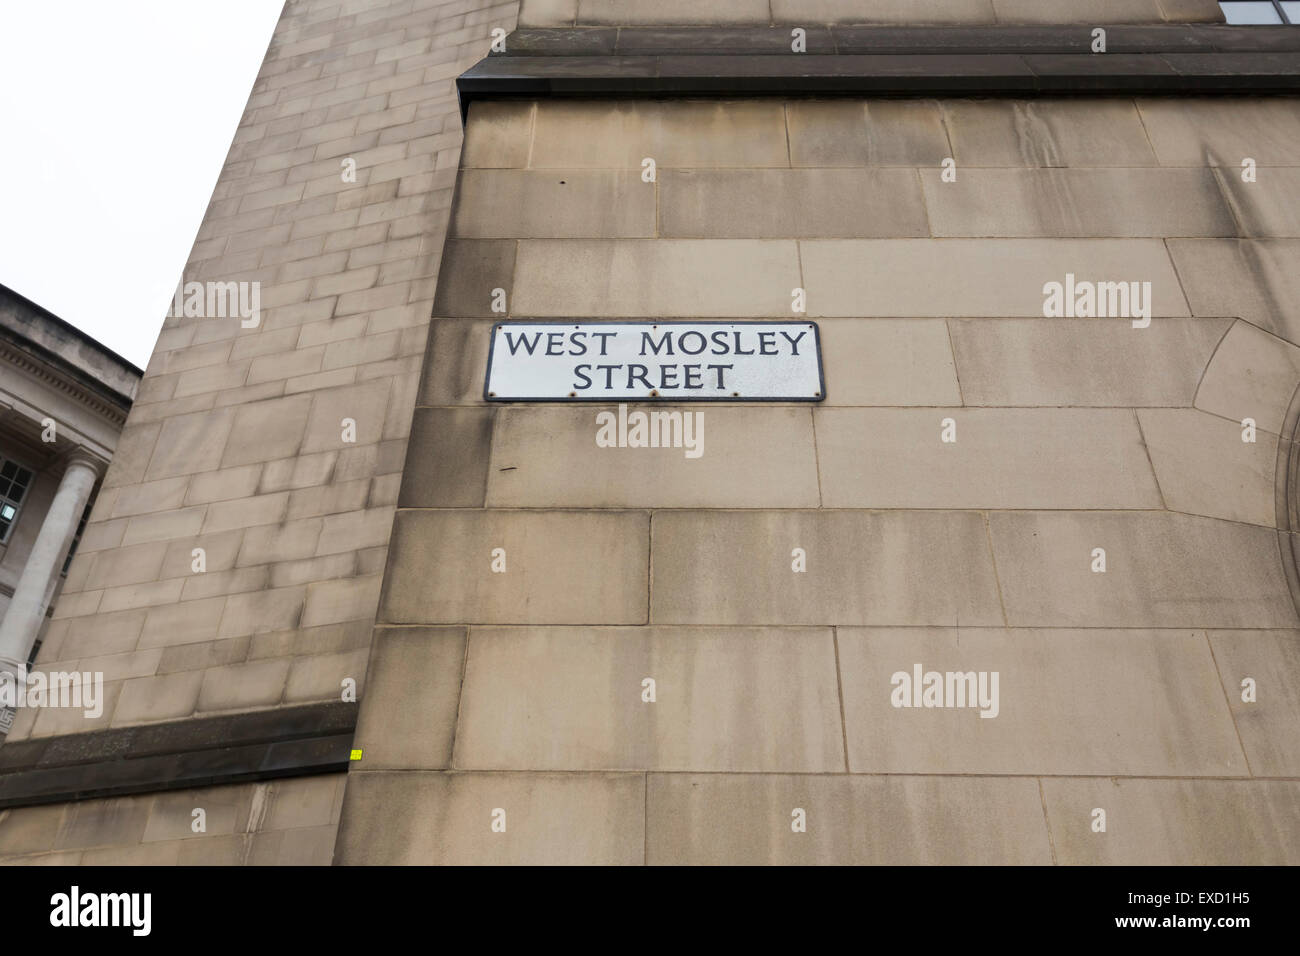 Street sign in Manchester City Centre. Stock Photo